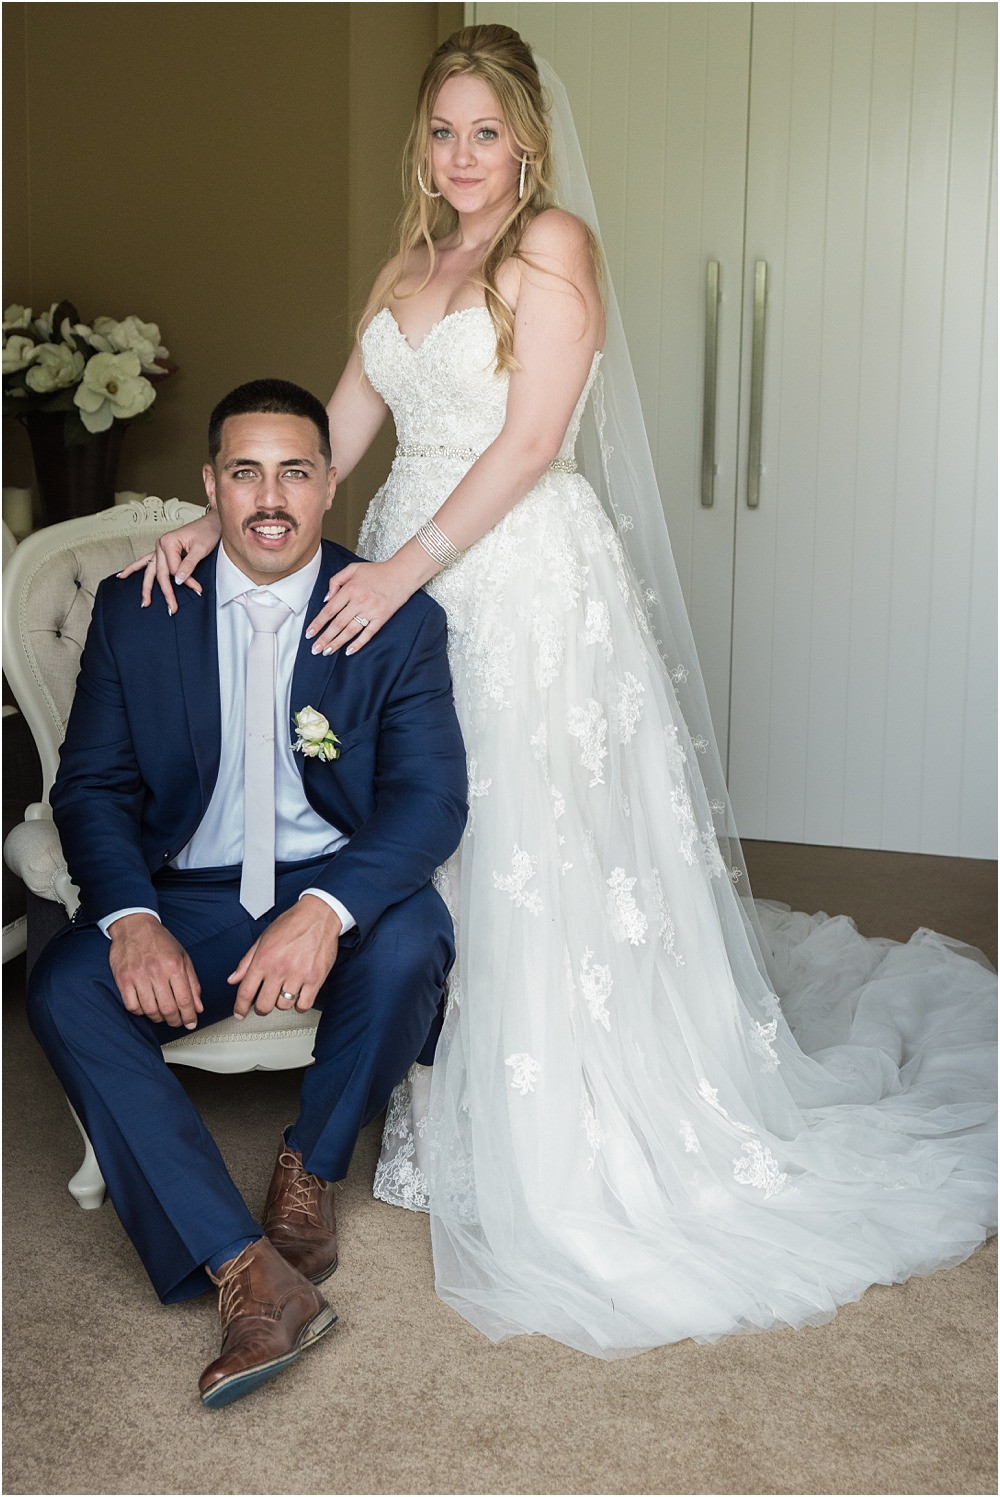 photo of groom sitting on an arm chair with bride's hands on his shoulders in the bridal suite at lacebark wedding venue